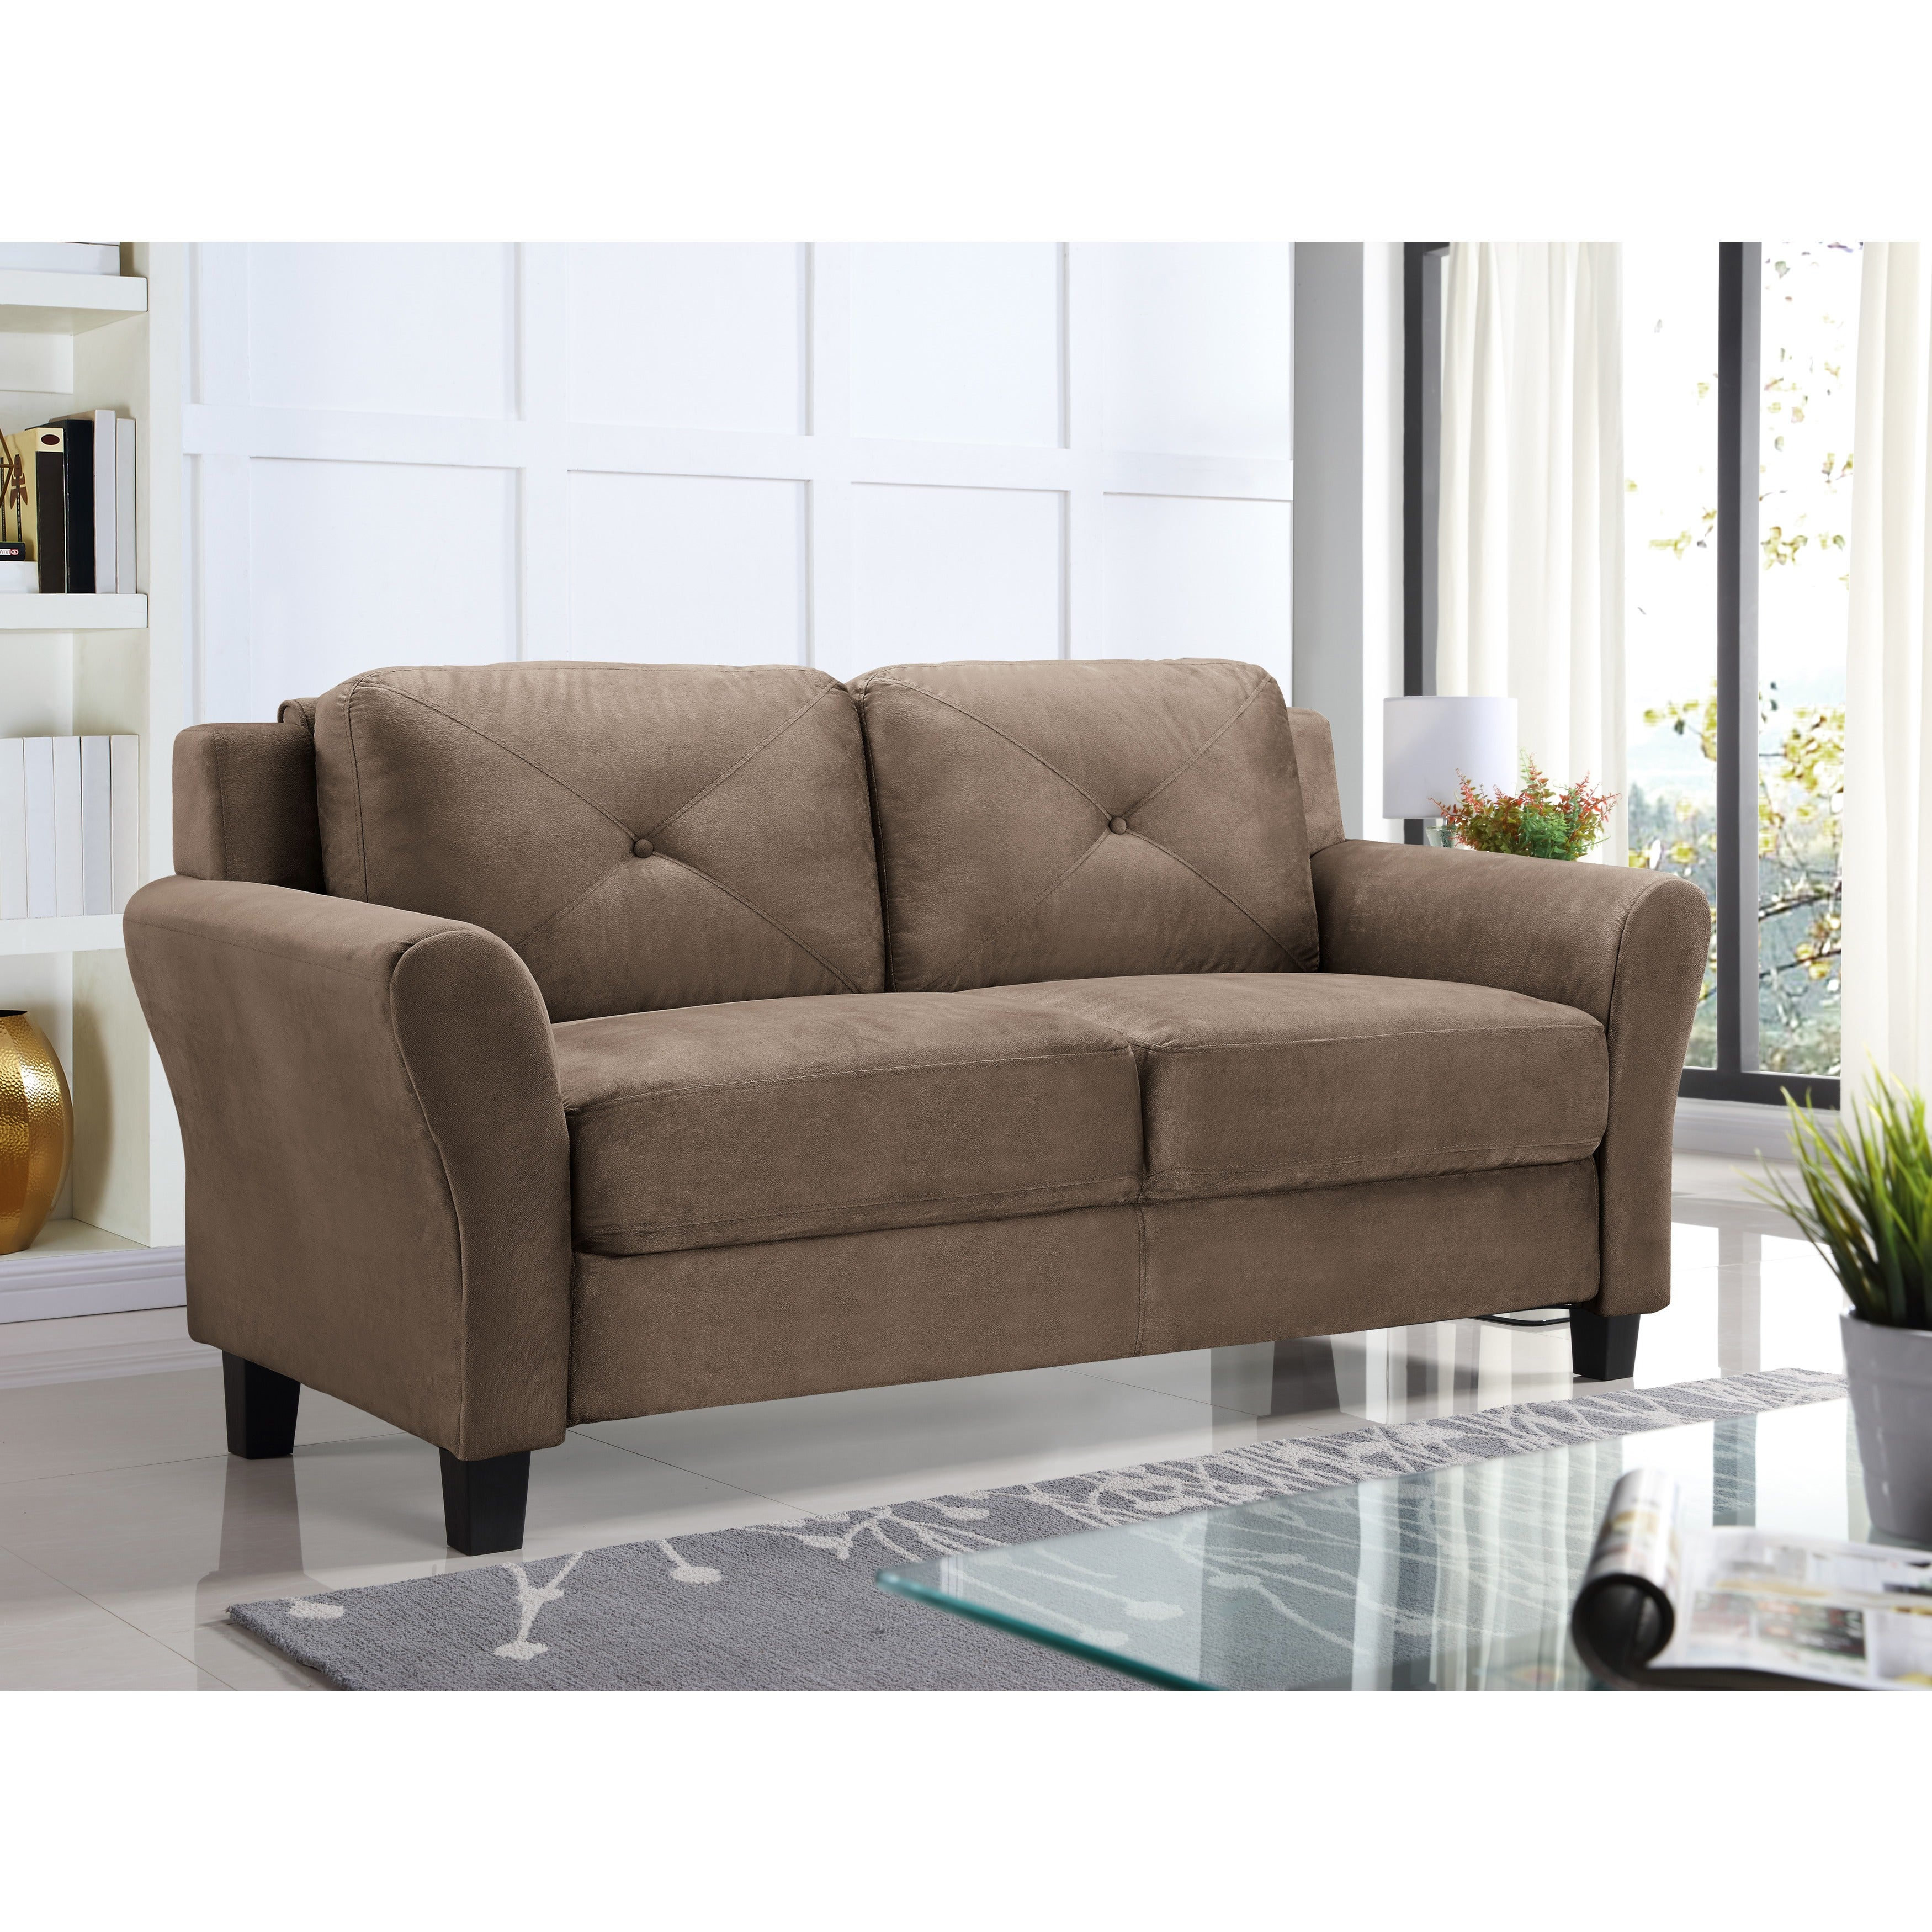 with item content height craftmaster threshold traditional wood trim legs turned products loveseat width